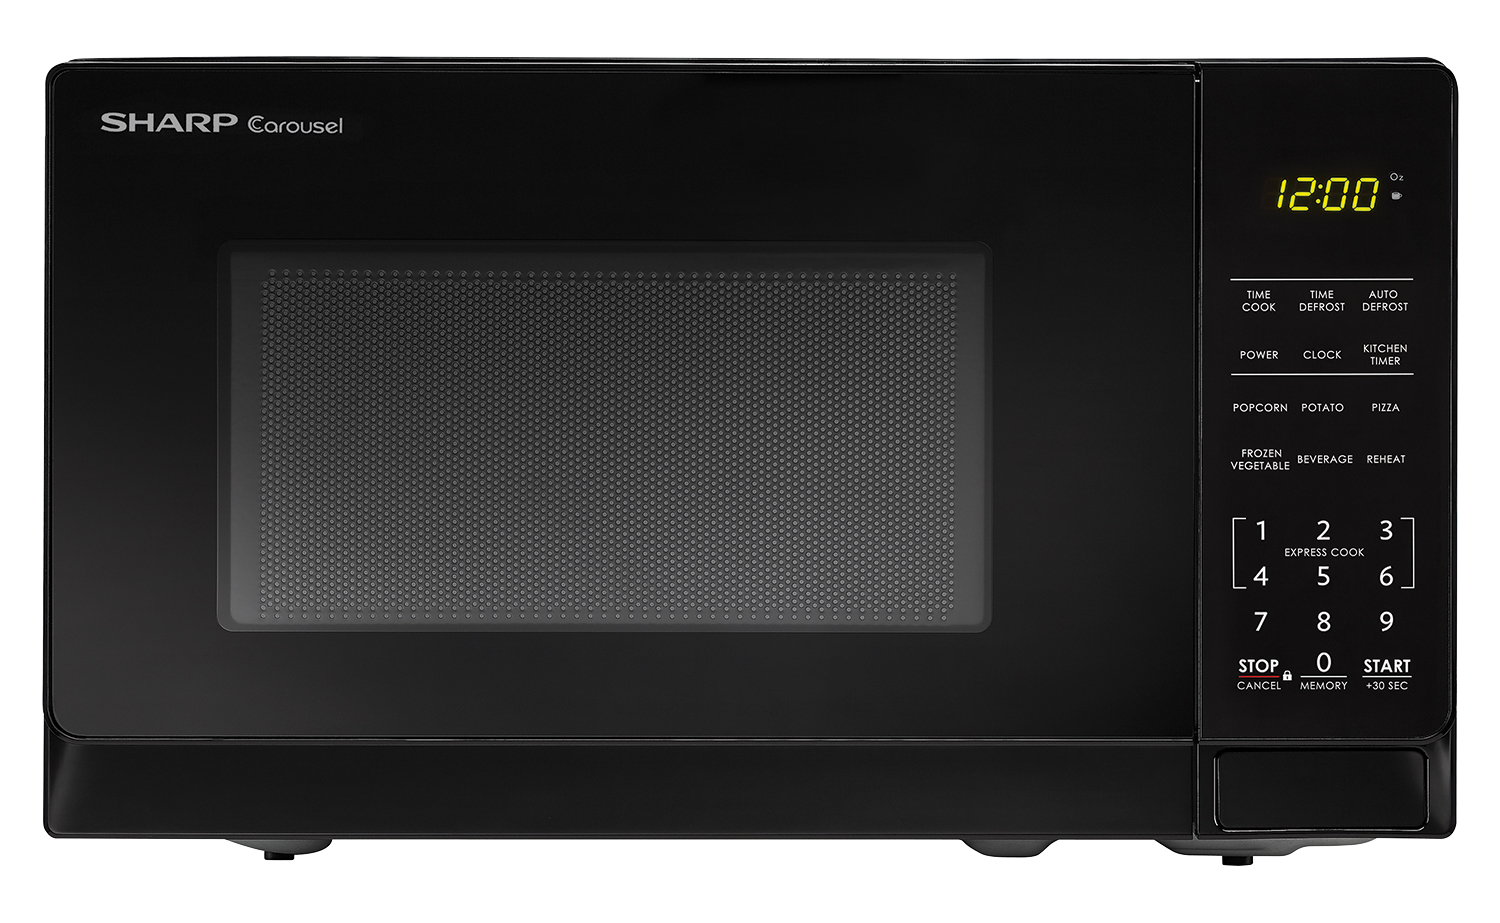 SMC0710BB 0.7 Cu Ft Black Carousel Microwave - SHARP